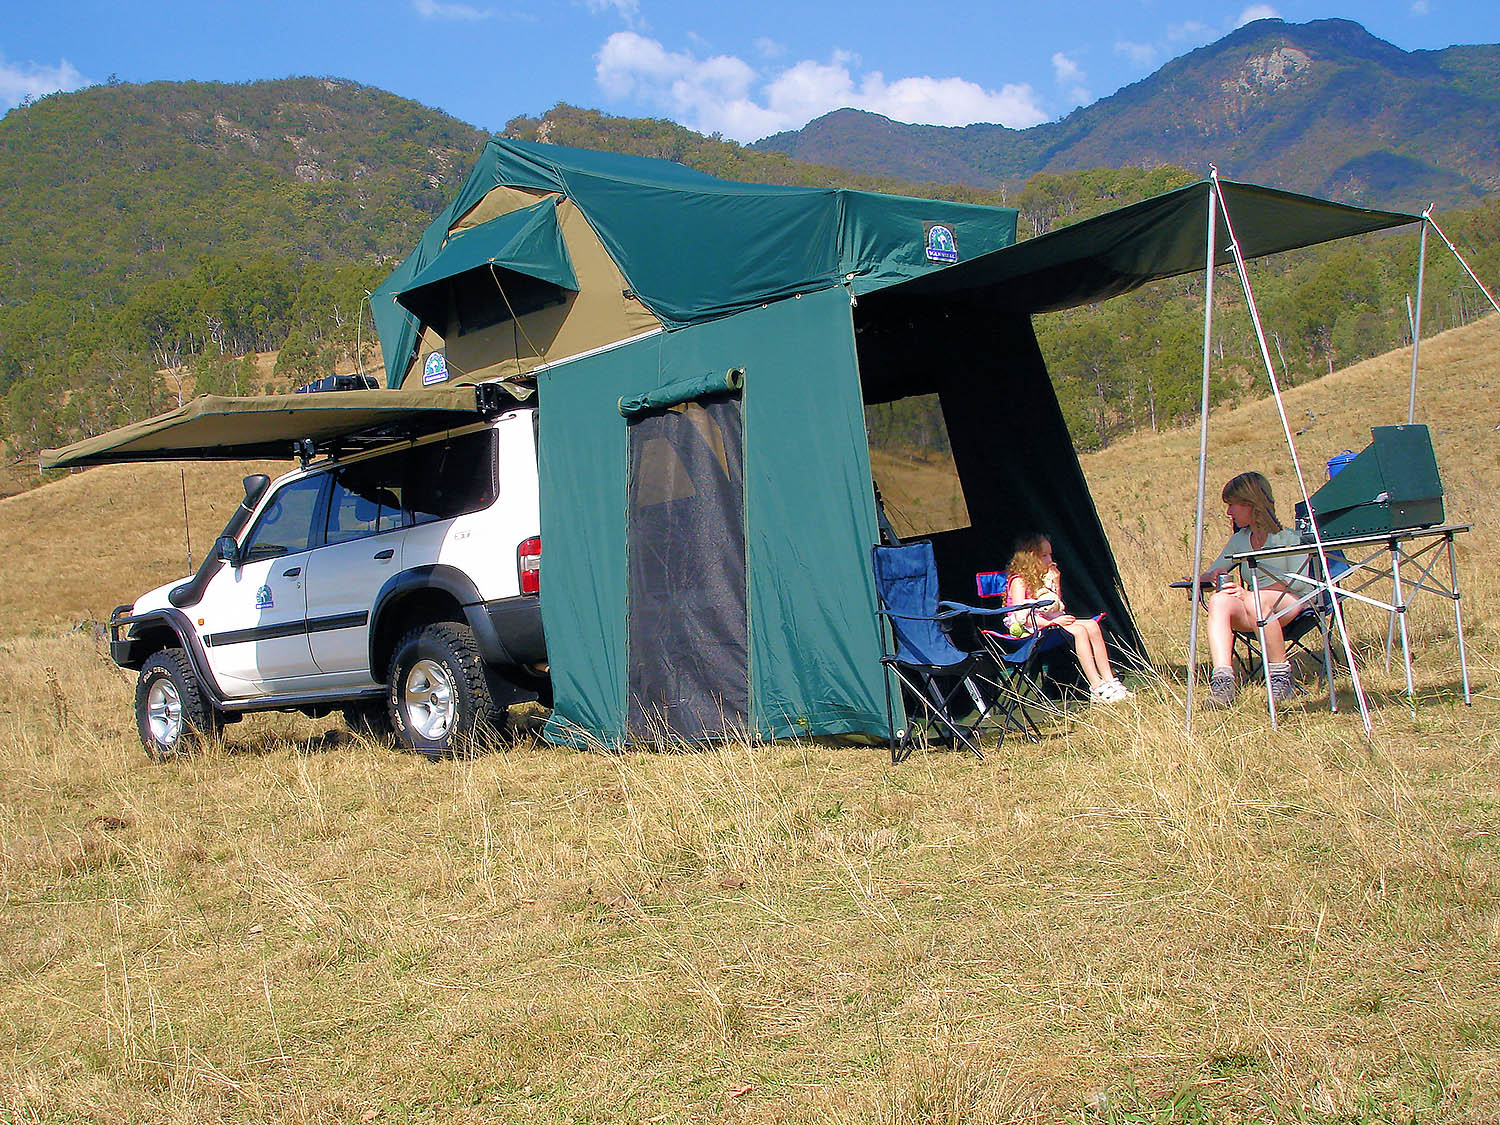 Hannibal Tourer Canvas Tent : hannibal roof tent uk - memphite.com